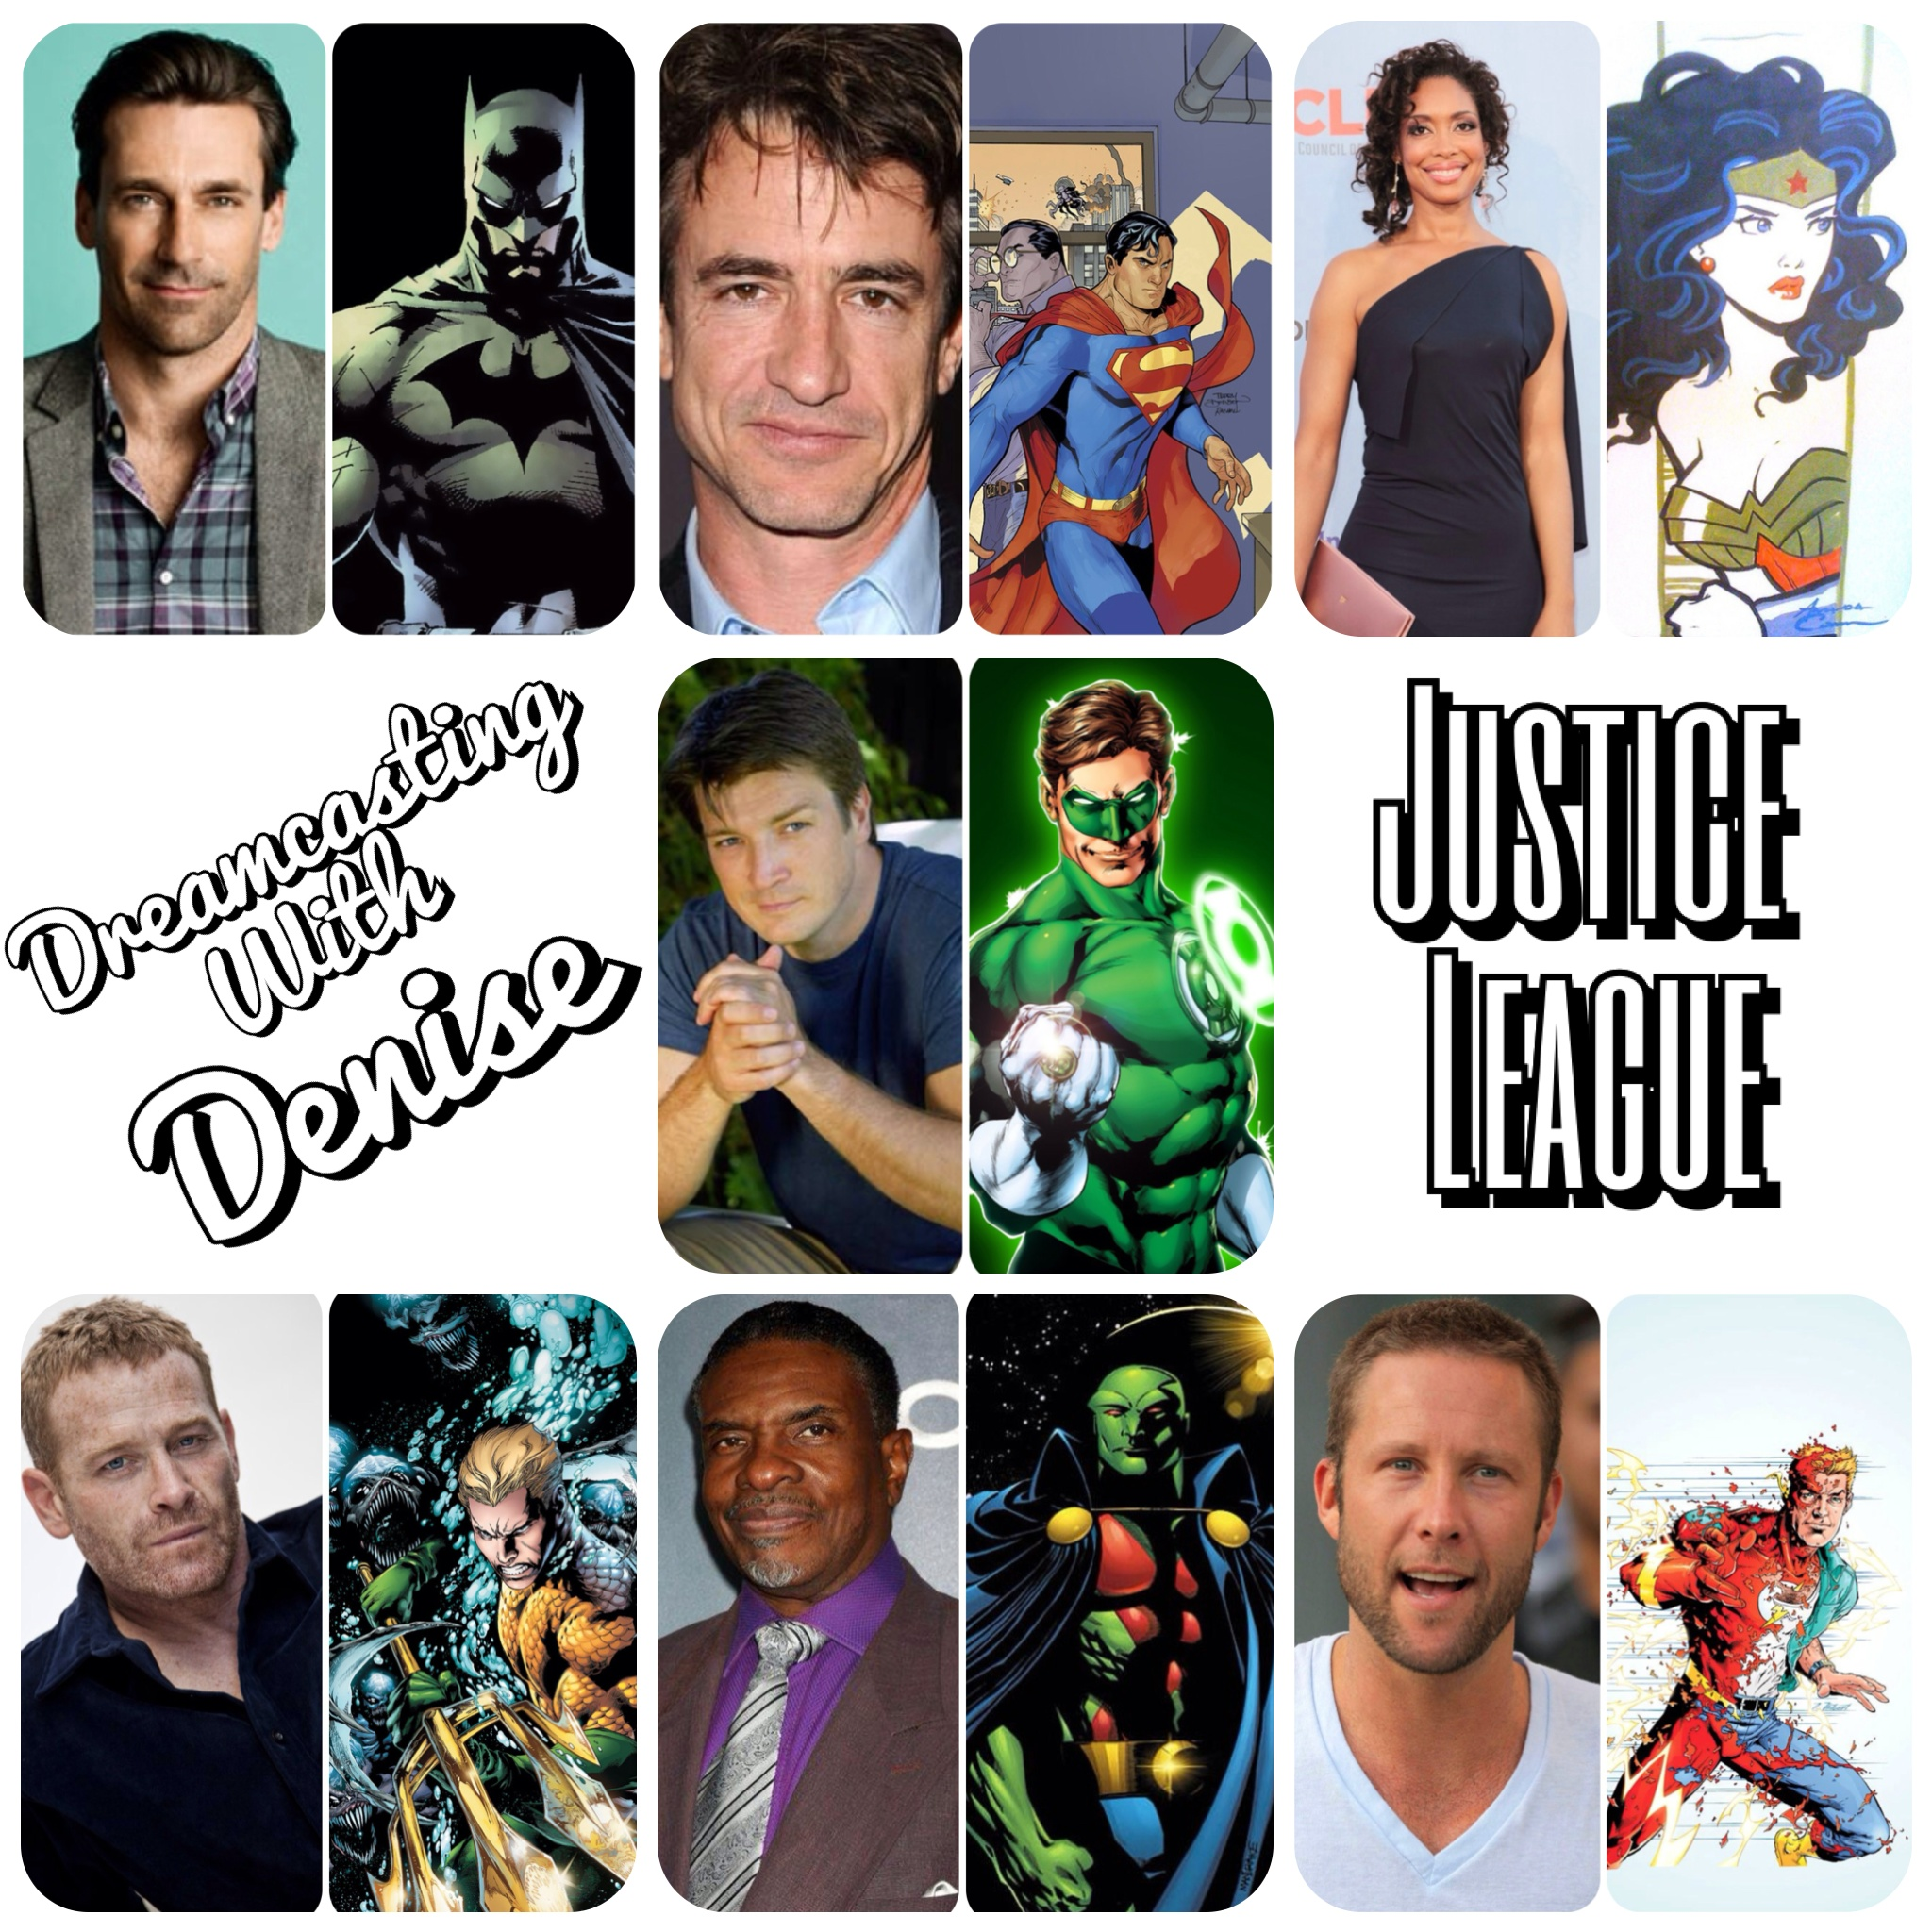 Dreamcasting With Denise Justice League